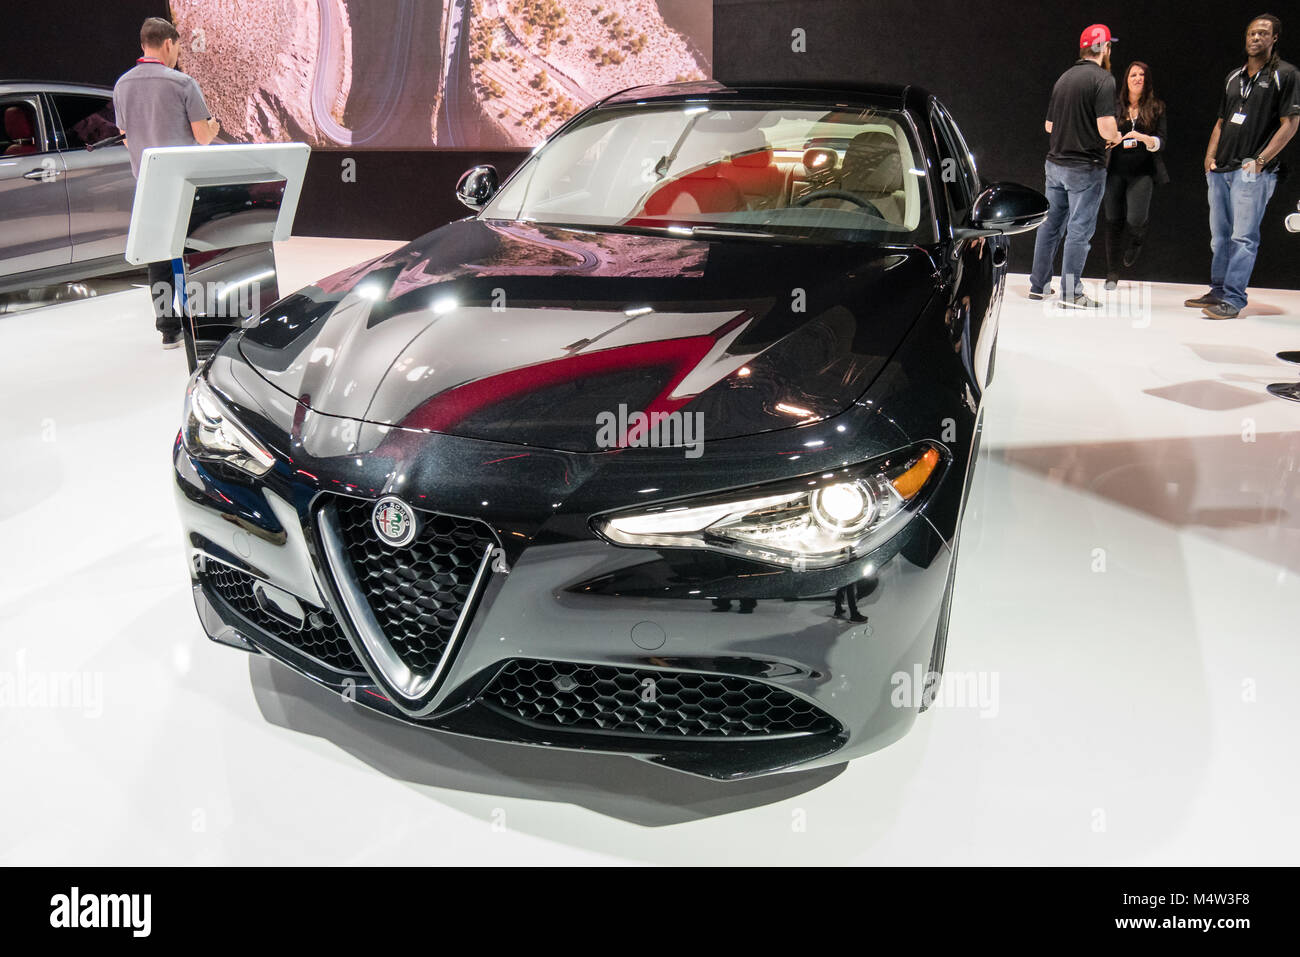 alfa romeo giulia stock photos alfa romeo giulia stock. Black Bedroom Furniture Sets. Home Design Ideas